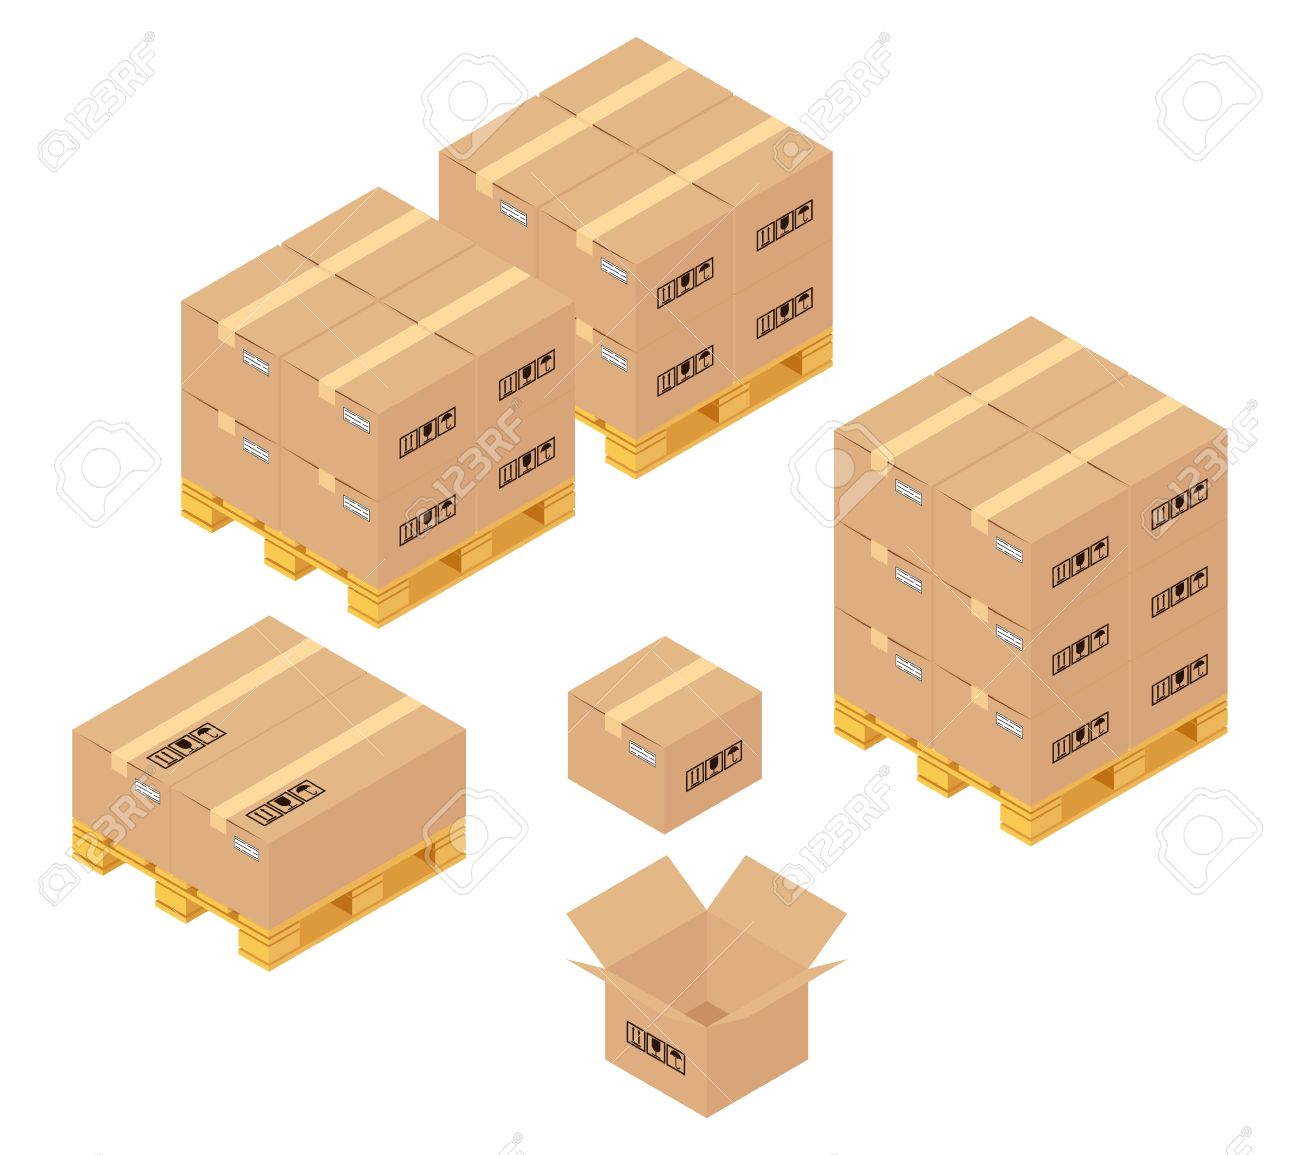 Cardboard Boxes In Warehouse. Storage, Delivery And Logistics Services.  Transportation And Warehouse,